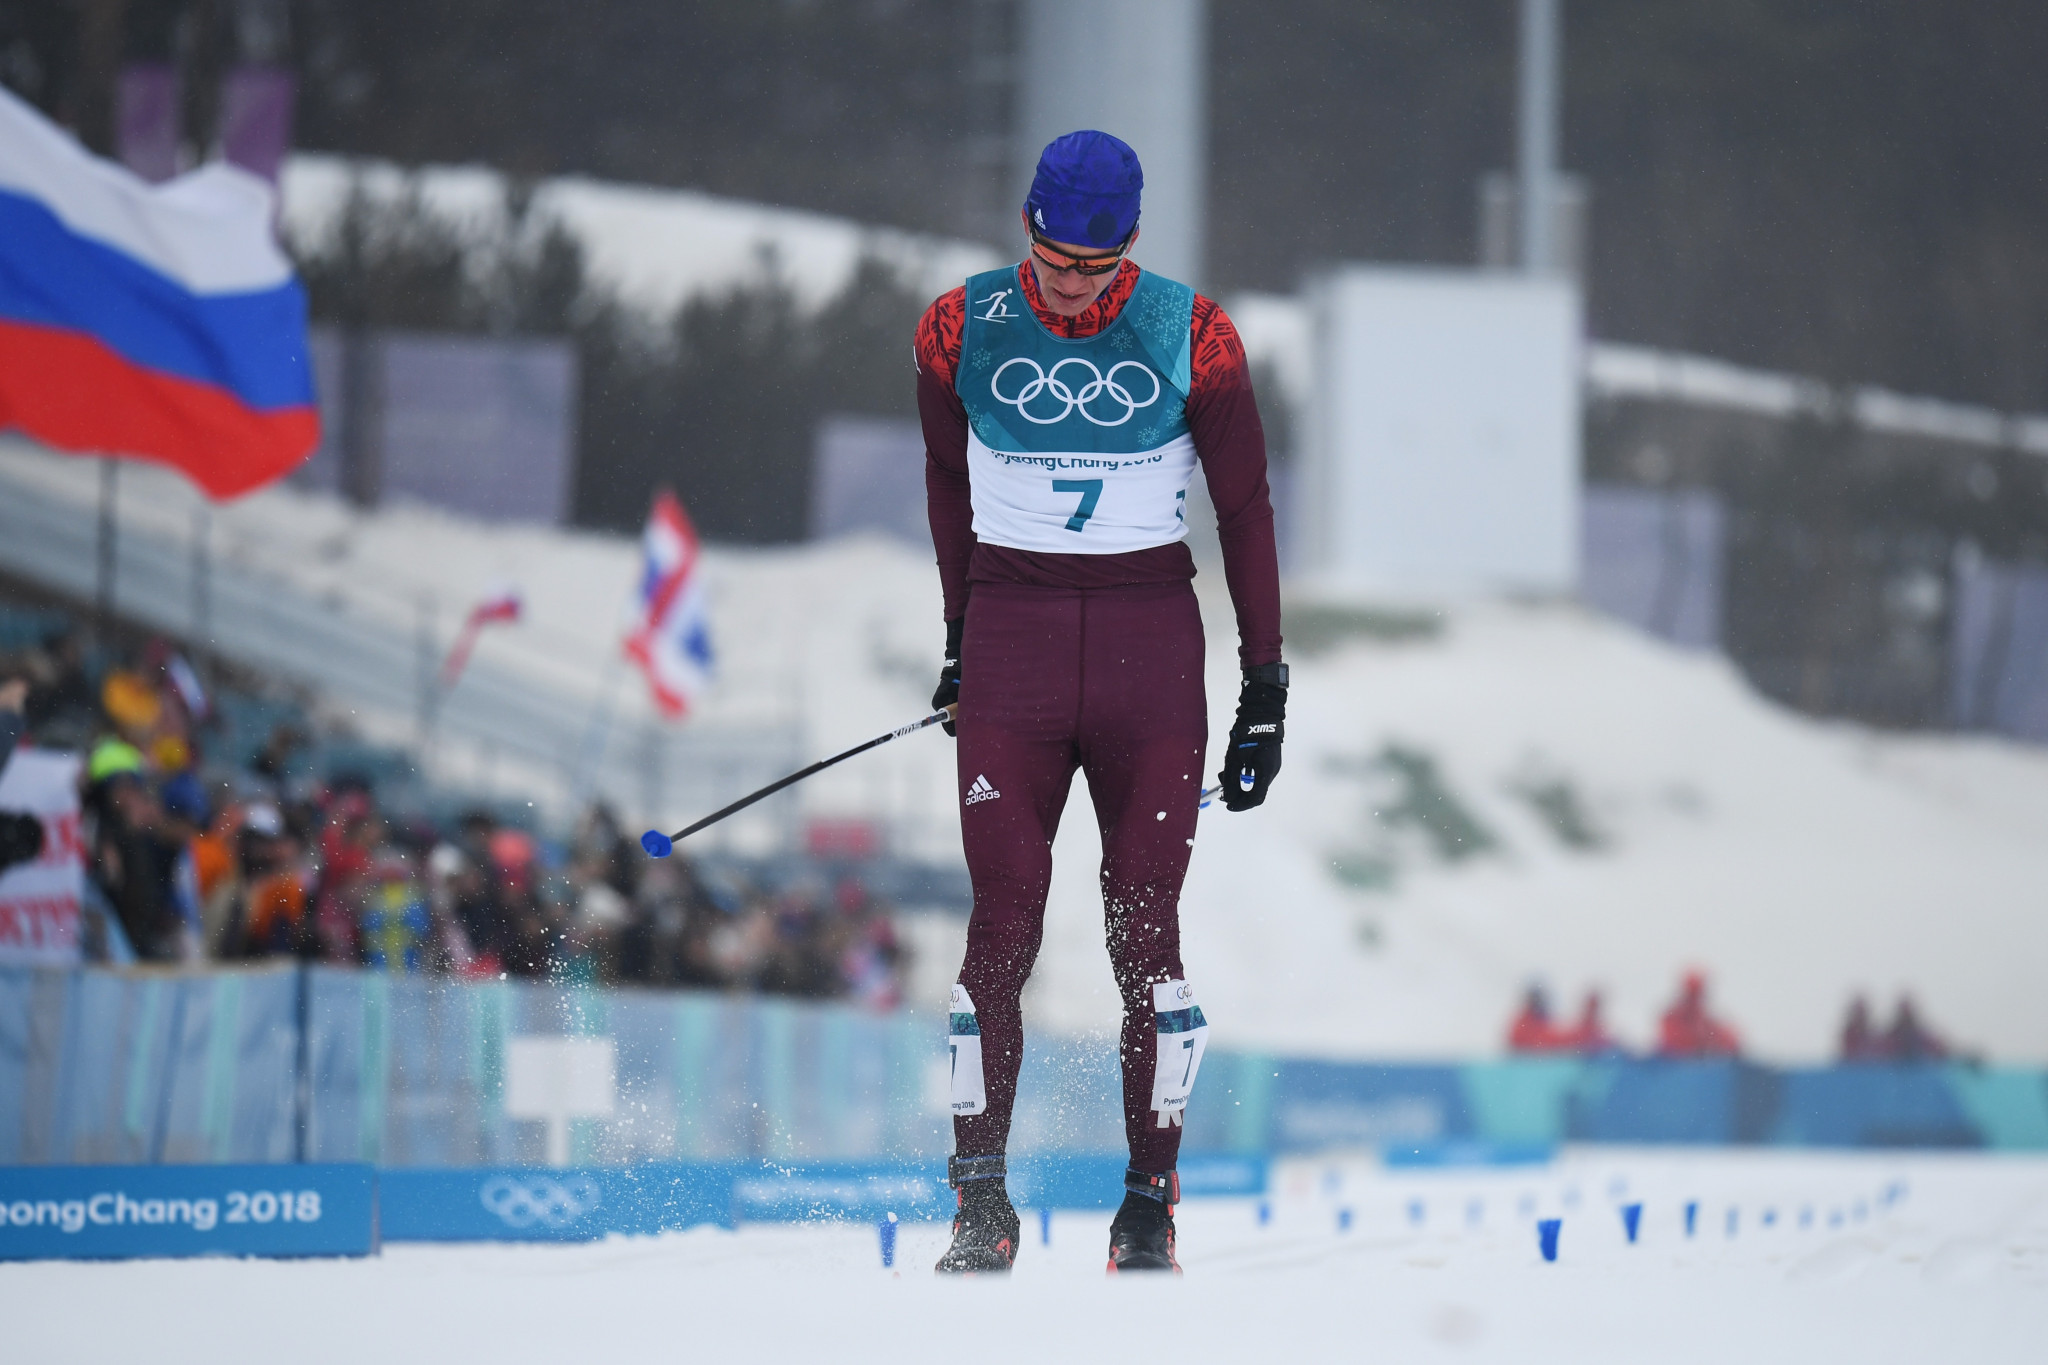 OAR's Alexander Bolshunov was bitterly disappointed with his second-place finish ©Getty Images